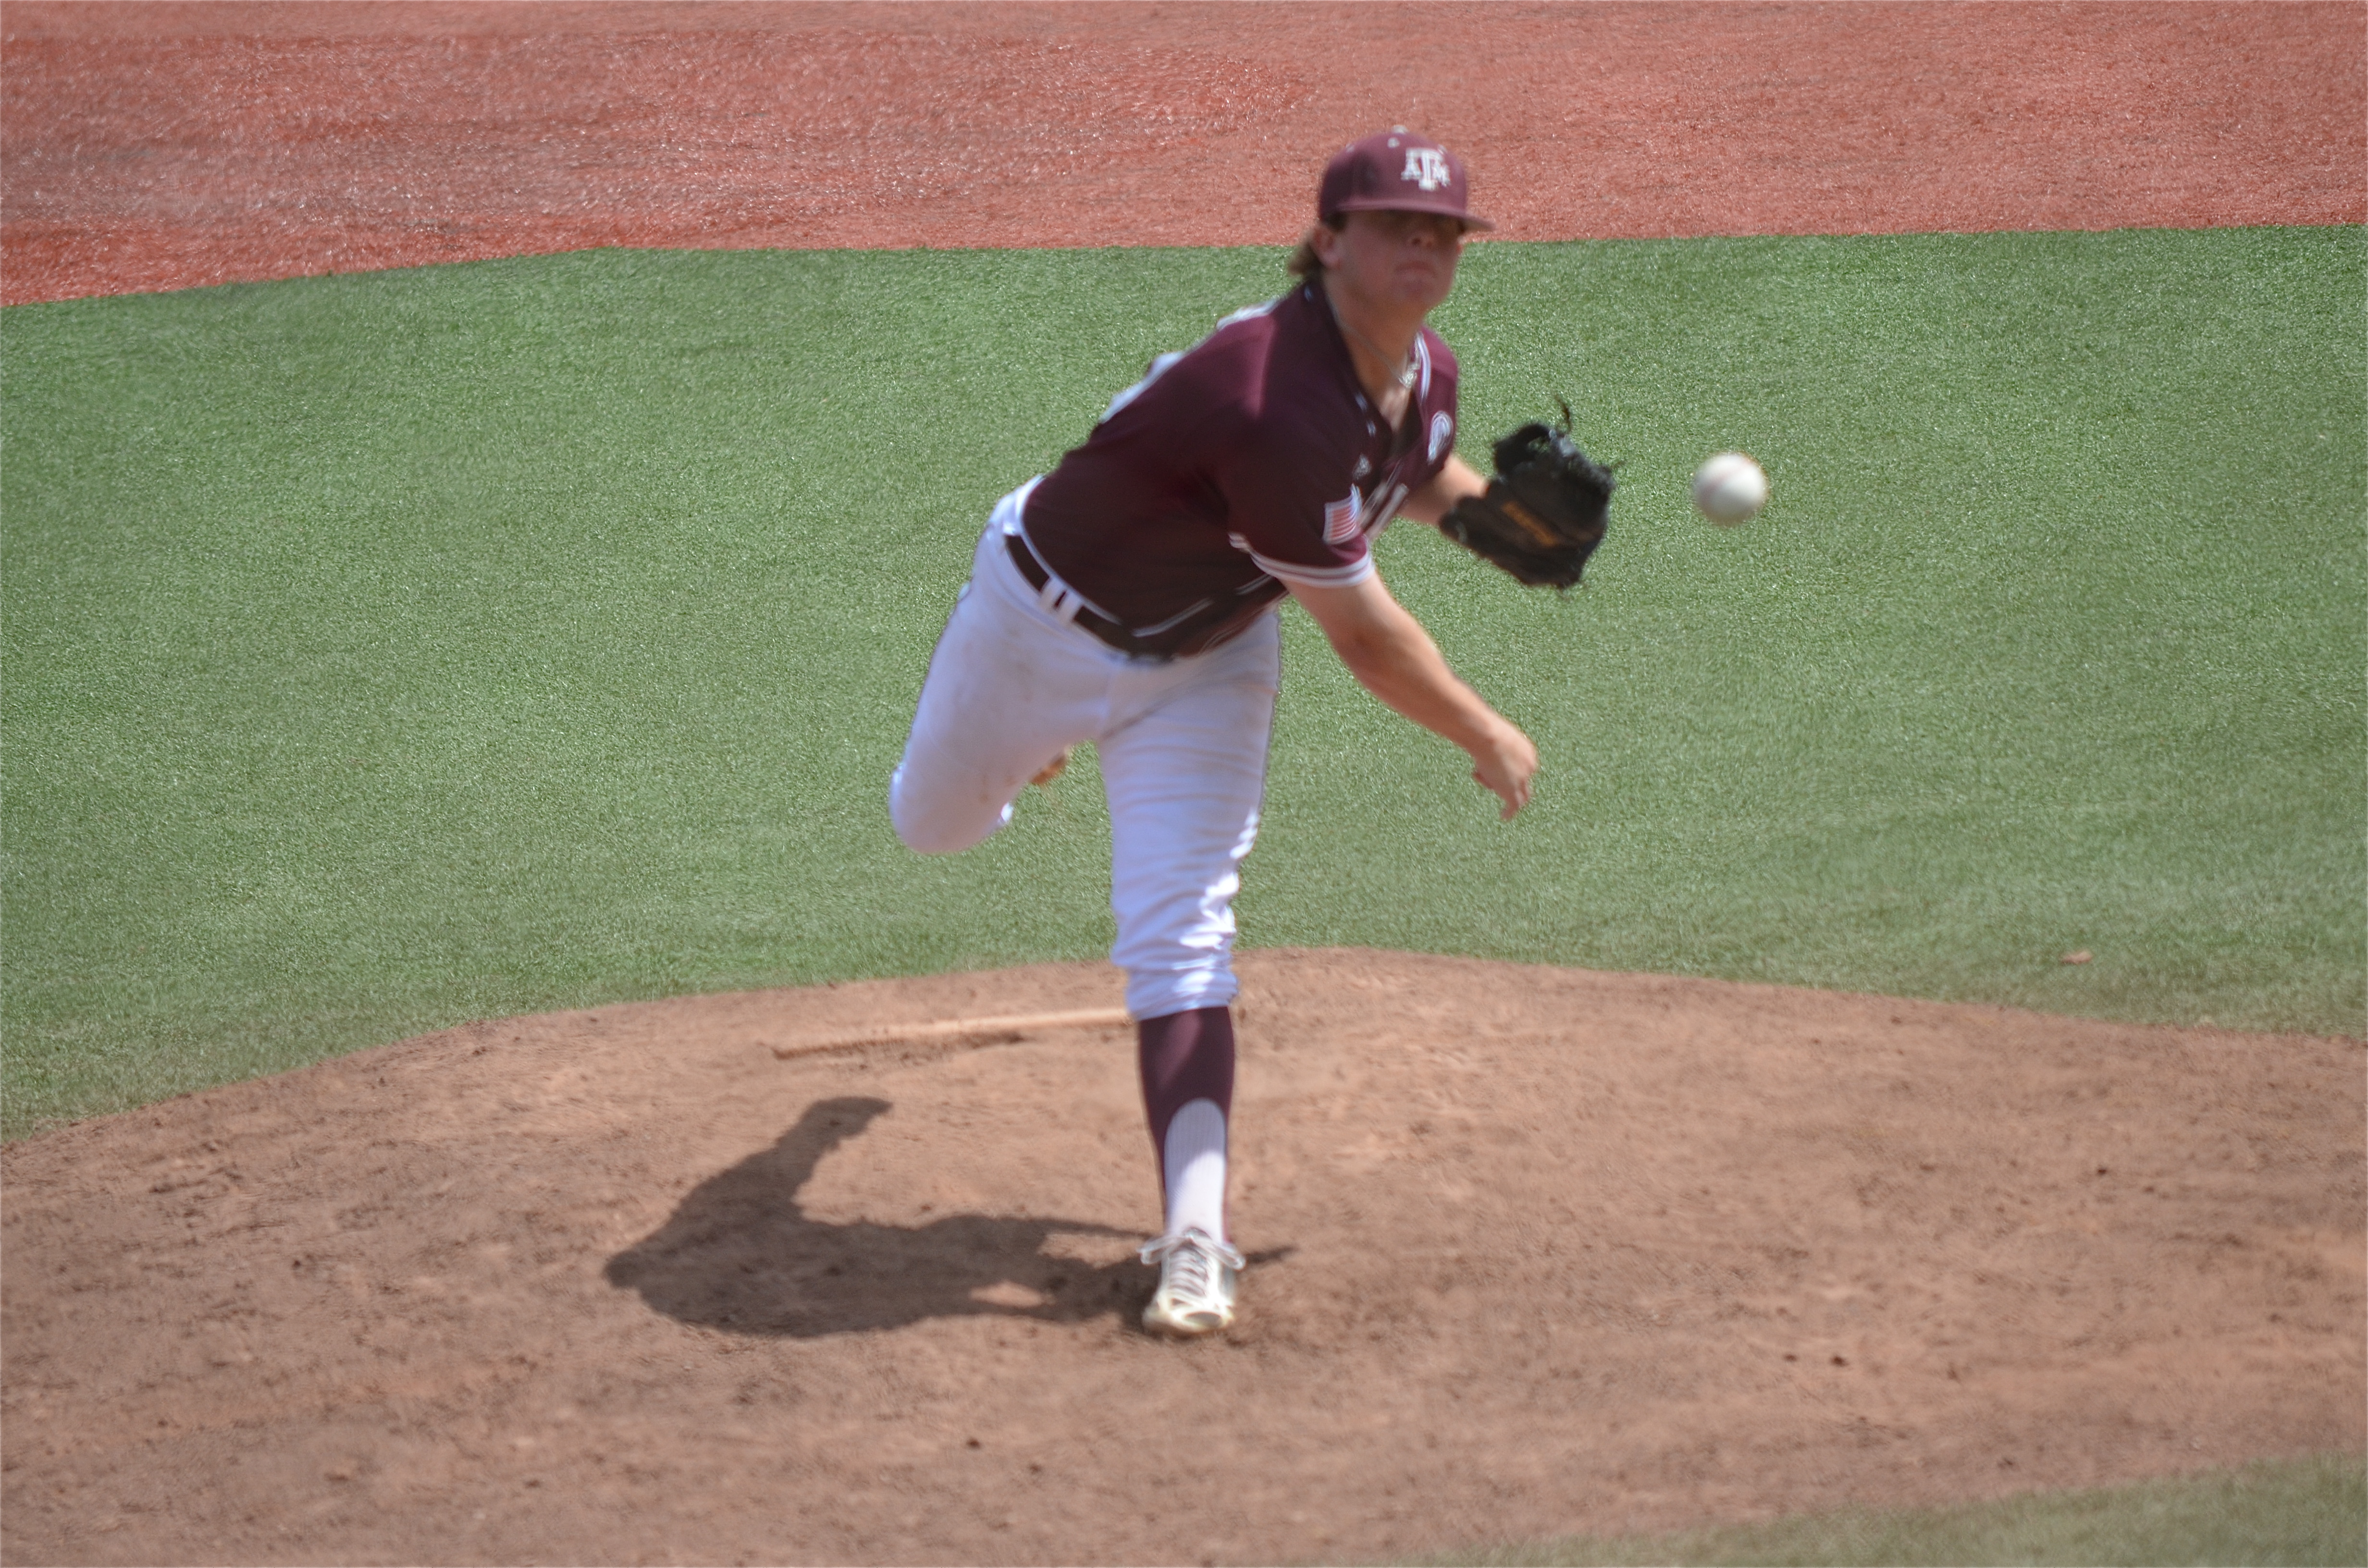 A&M reliever Jason Jester delivers to the plate in the ninth inning. He earned his 14th save with 2 1/3 innings of relief. (photo by Aaron Yost)